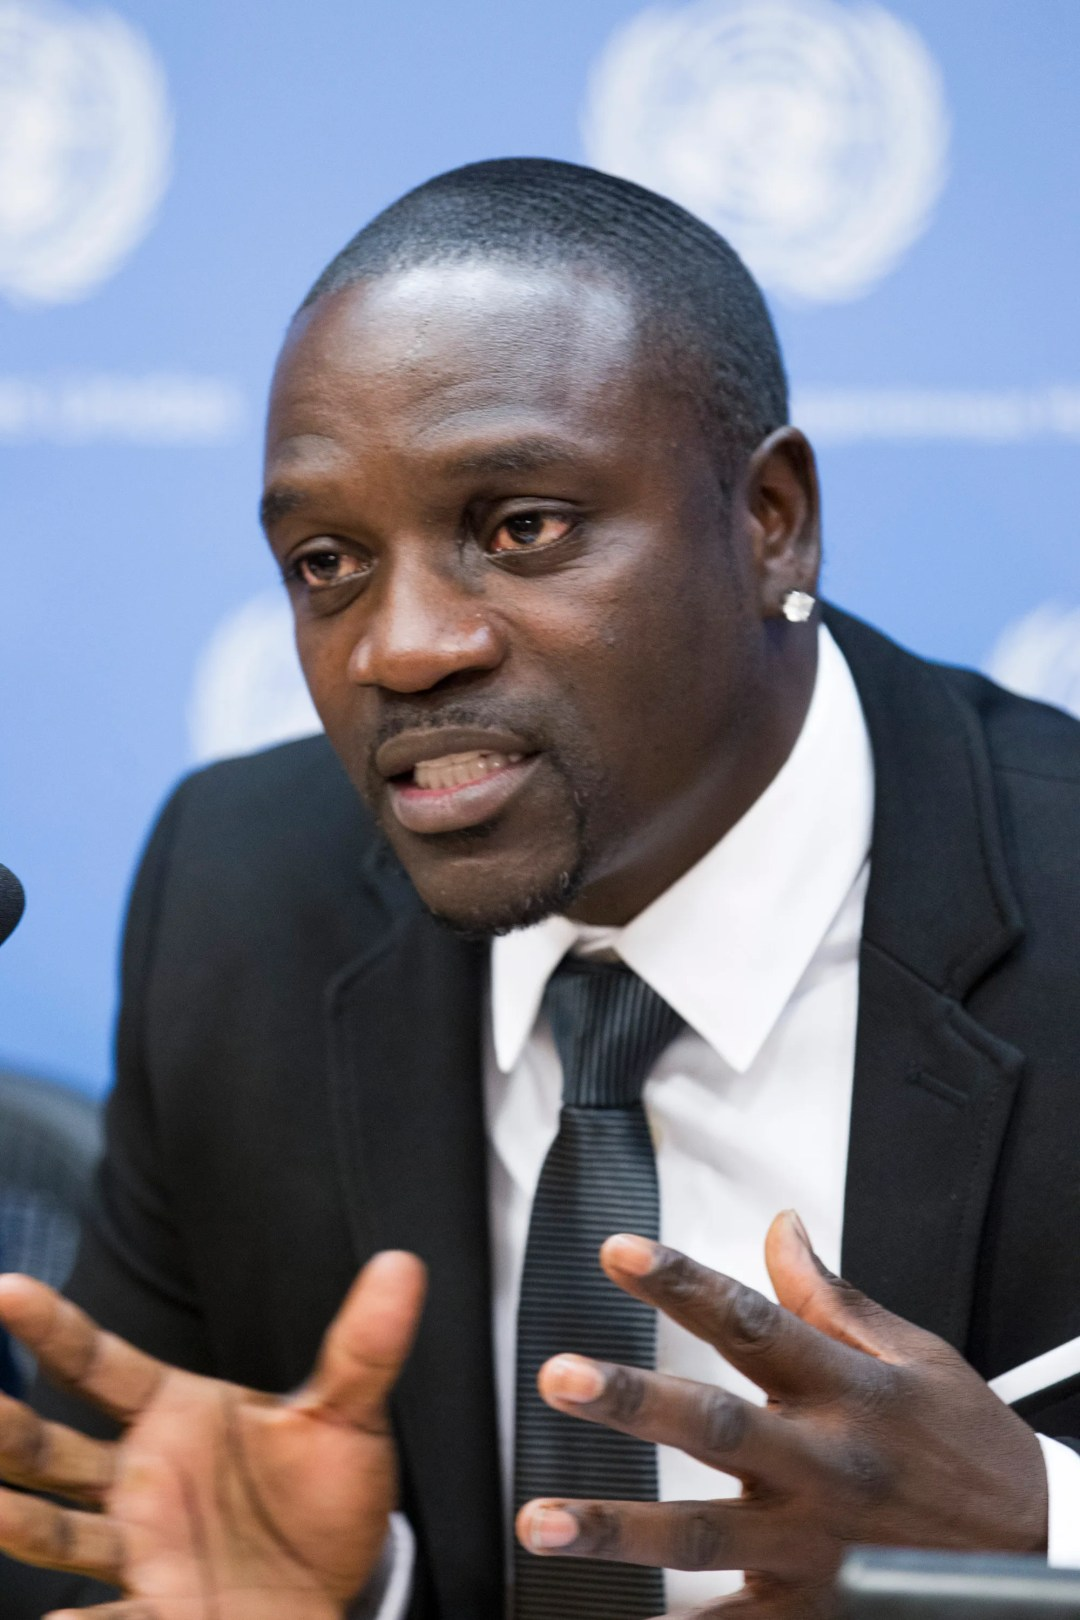 """Press Conference on """"Sustainable Energy for All: Actions and Commitments""""   Speakers: - Akon, R&B artist and co-founder, Akon Lighting Africa initiative; - Neven Mimica, European Commissioner for International Cooperation and Development; - Adnan Amin, Director-General, International Renewable Energy Agency; and - Sheila Oparaocha, Executive Secretary, Energia"""